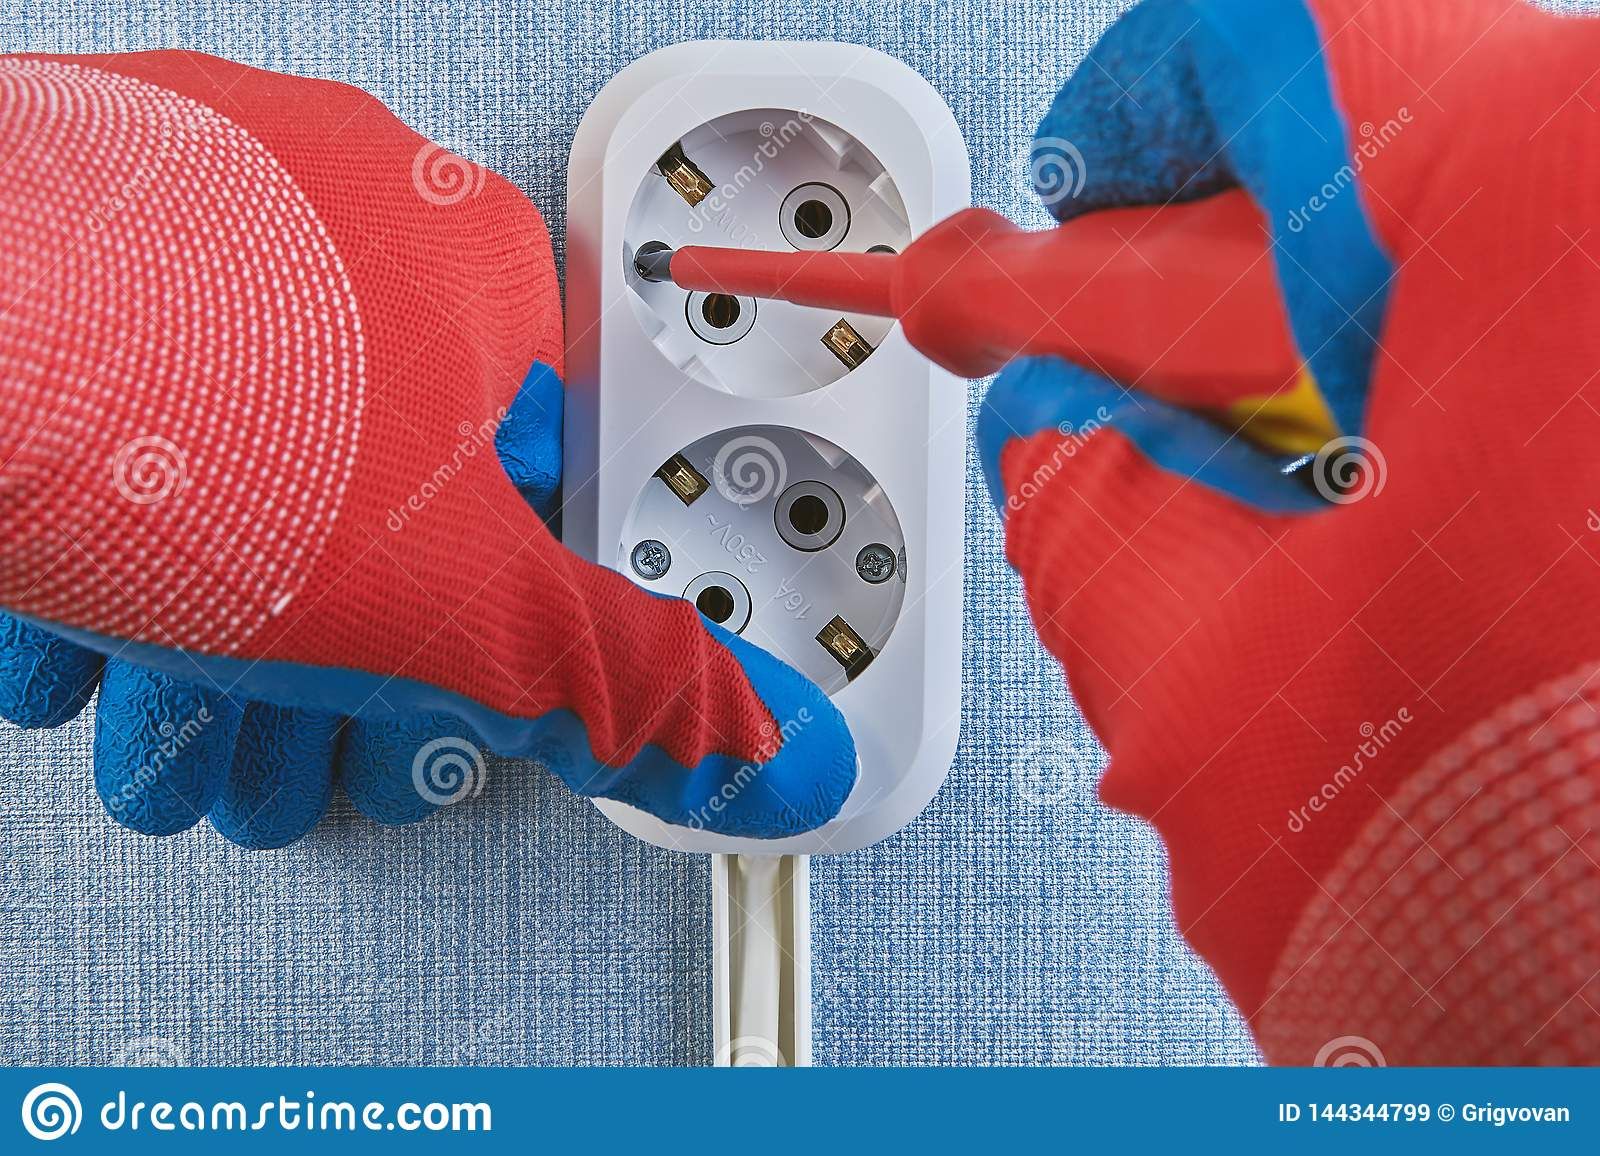 hight resolution of tightening screws by screwdriver during installing wall plug socket residential wiring work hands house power energy electricity protection wire working